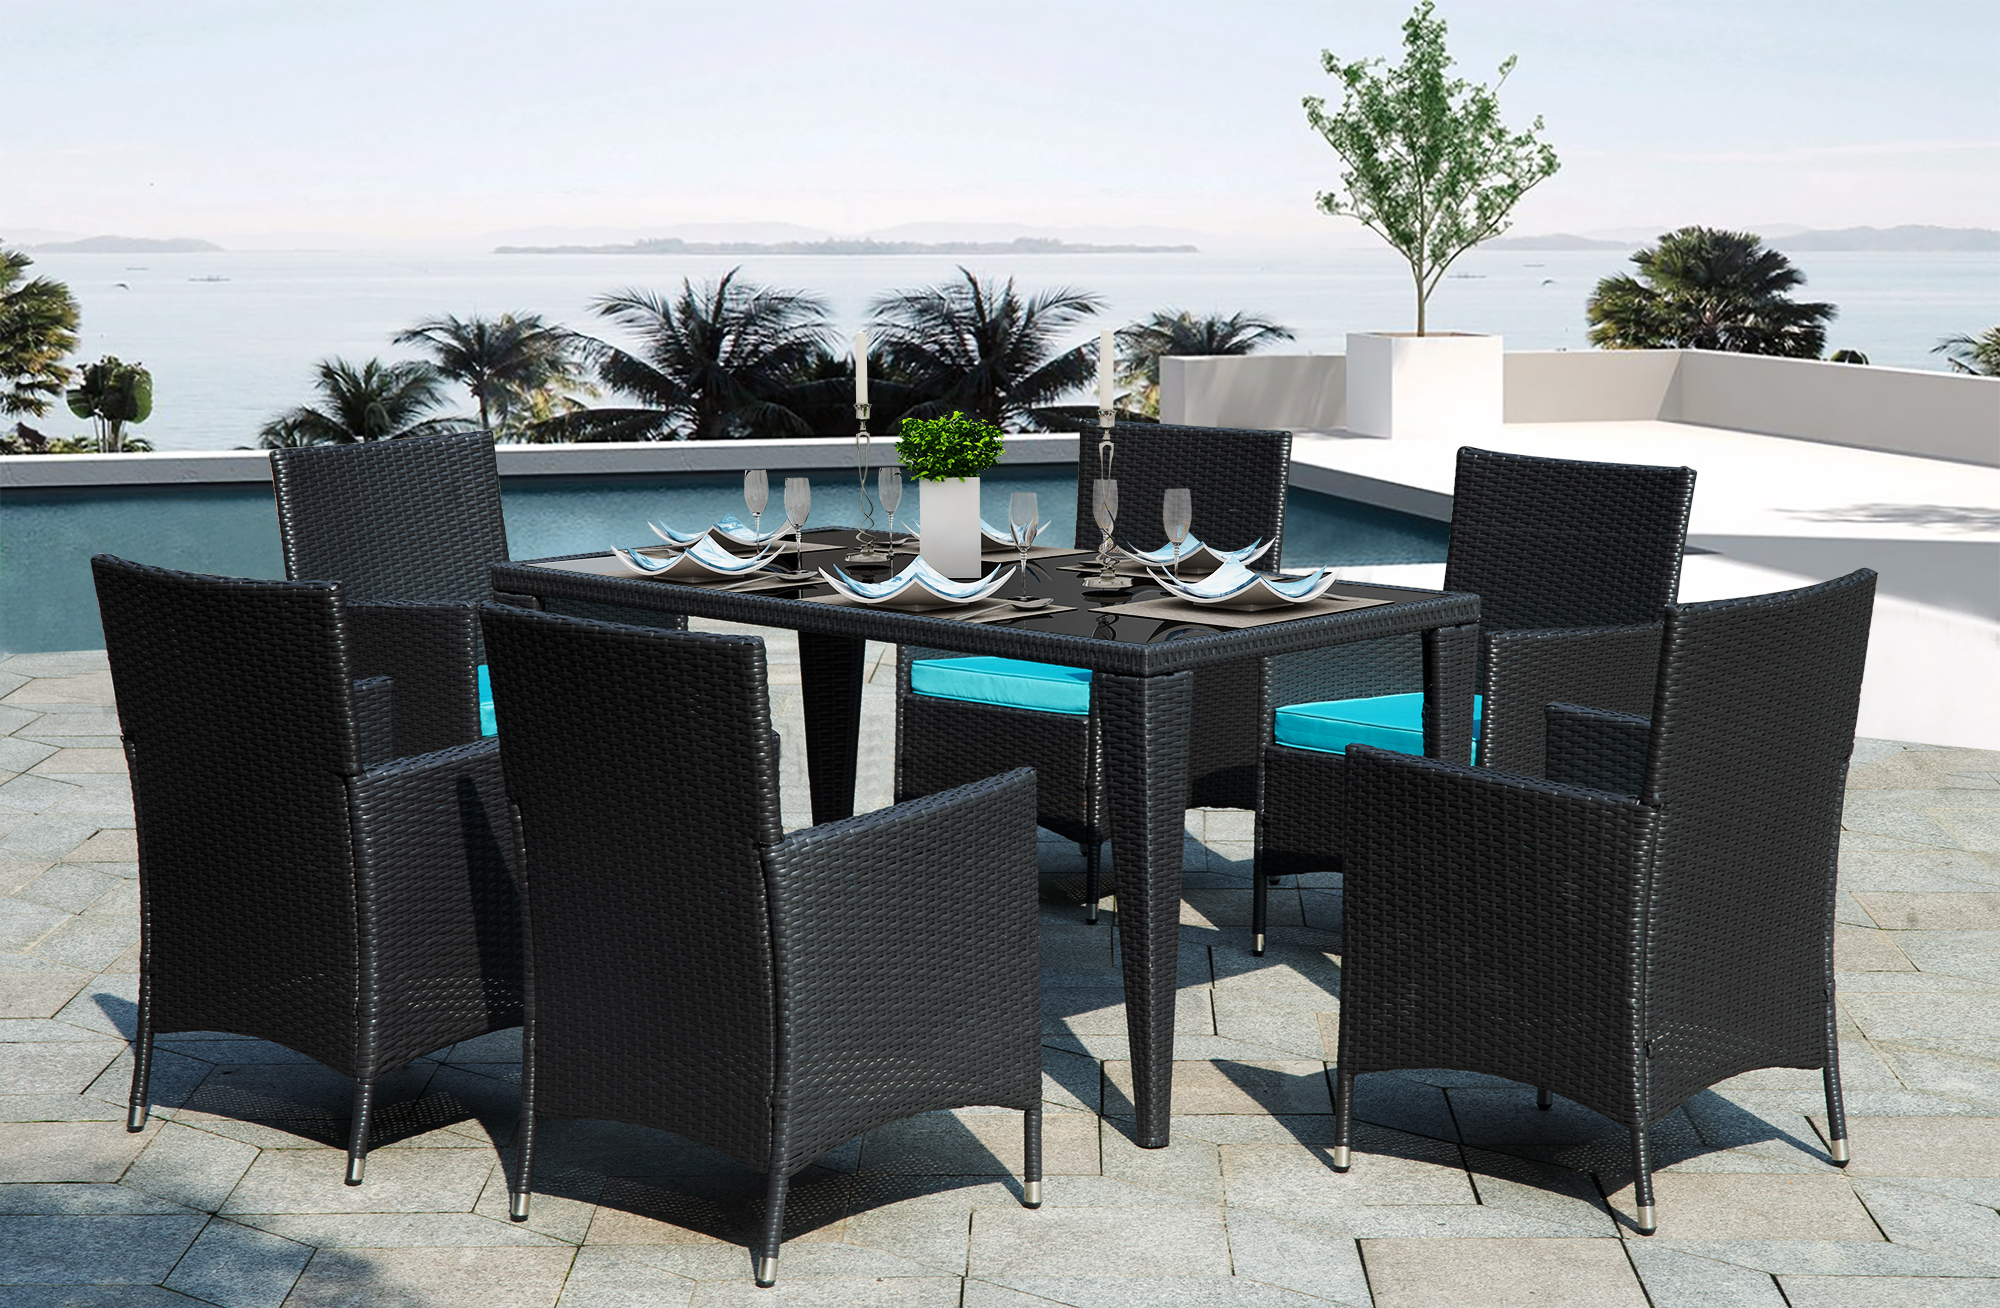 black wicker patio furniture set 6 rattan wicker chairs with glass dining table 7 piece outdoor patio dining set with blue removable cushions for